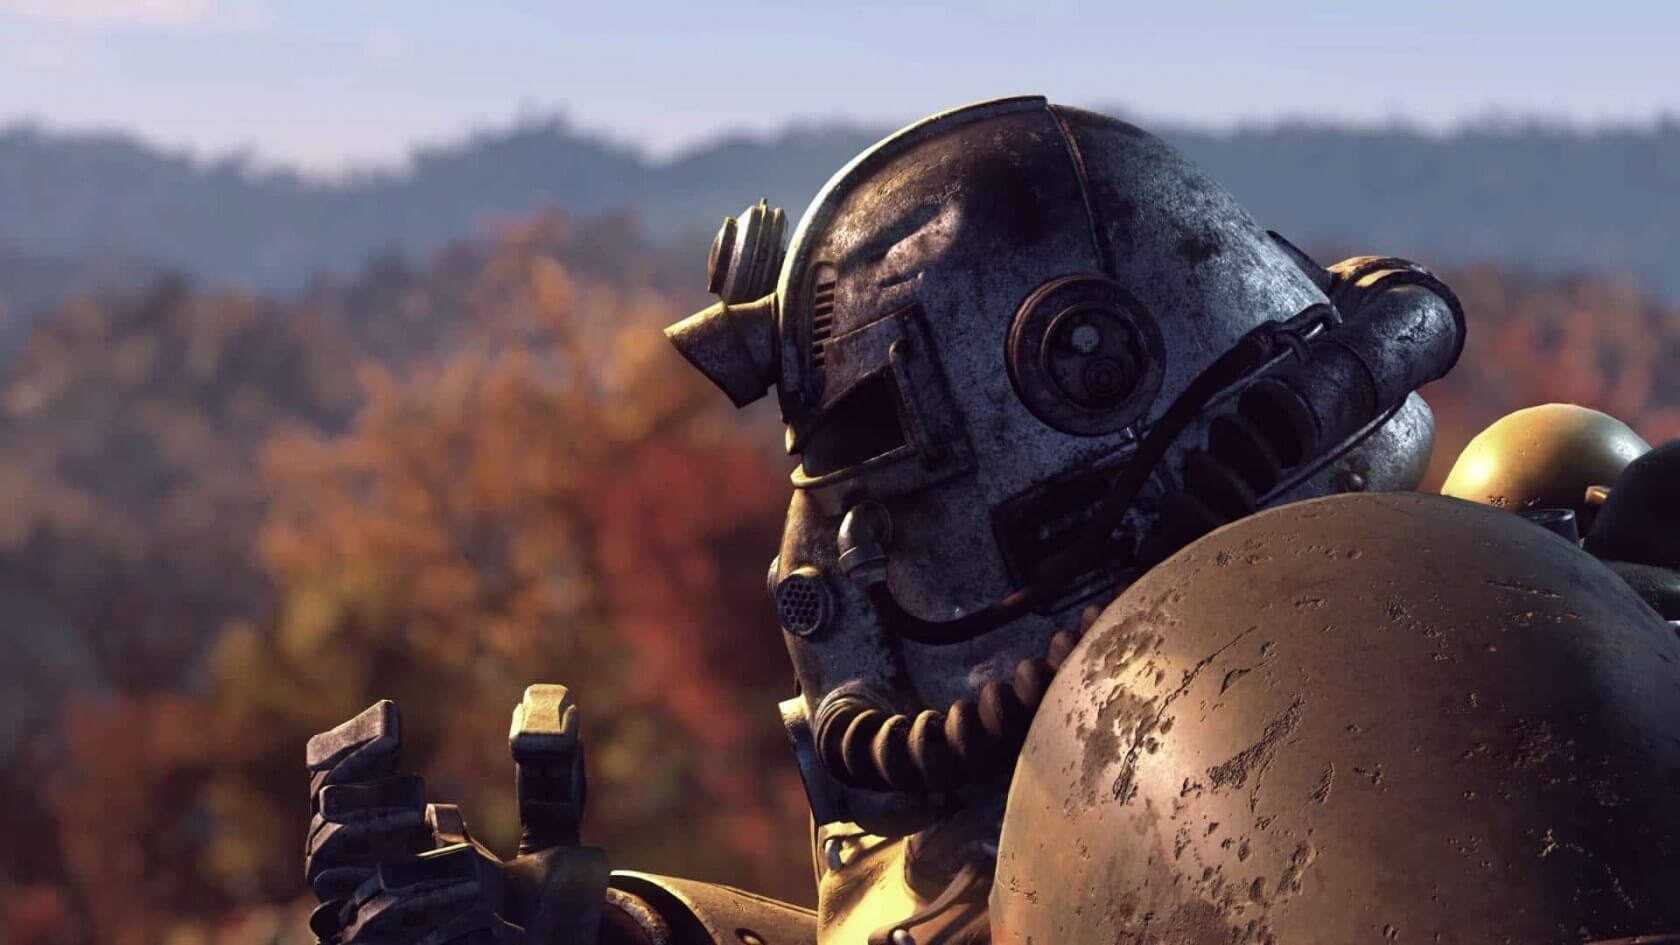 Fallout 76 Release Date Broken Internationally